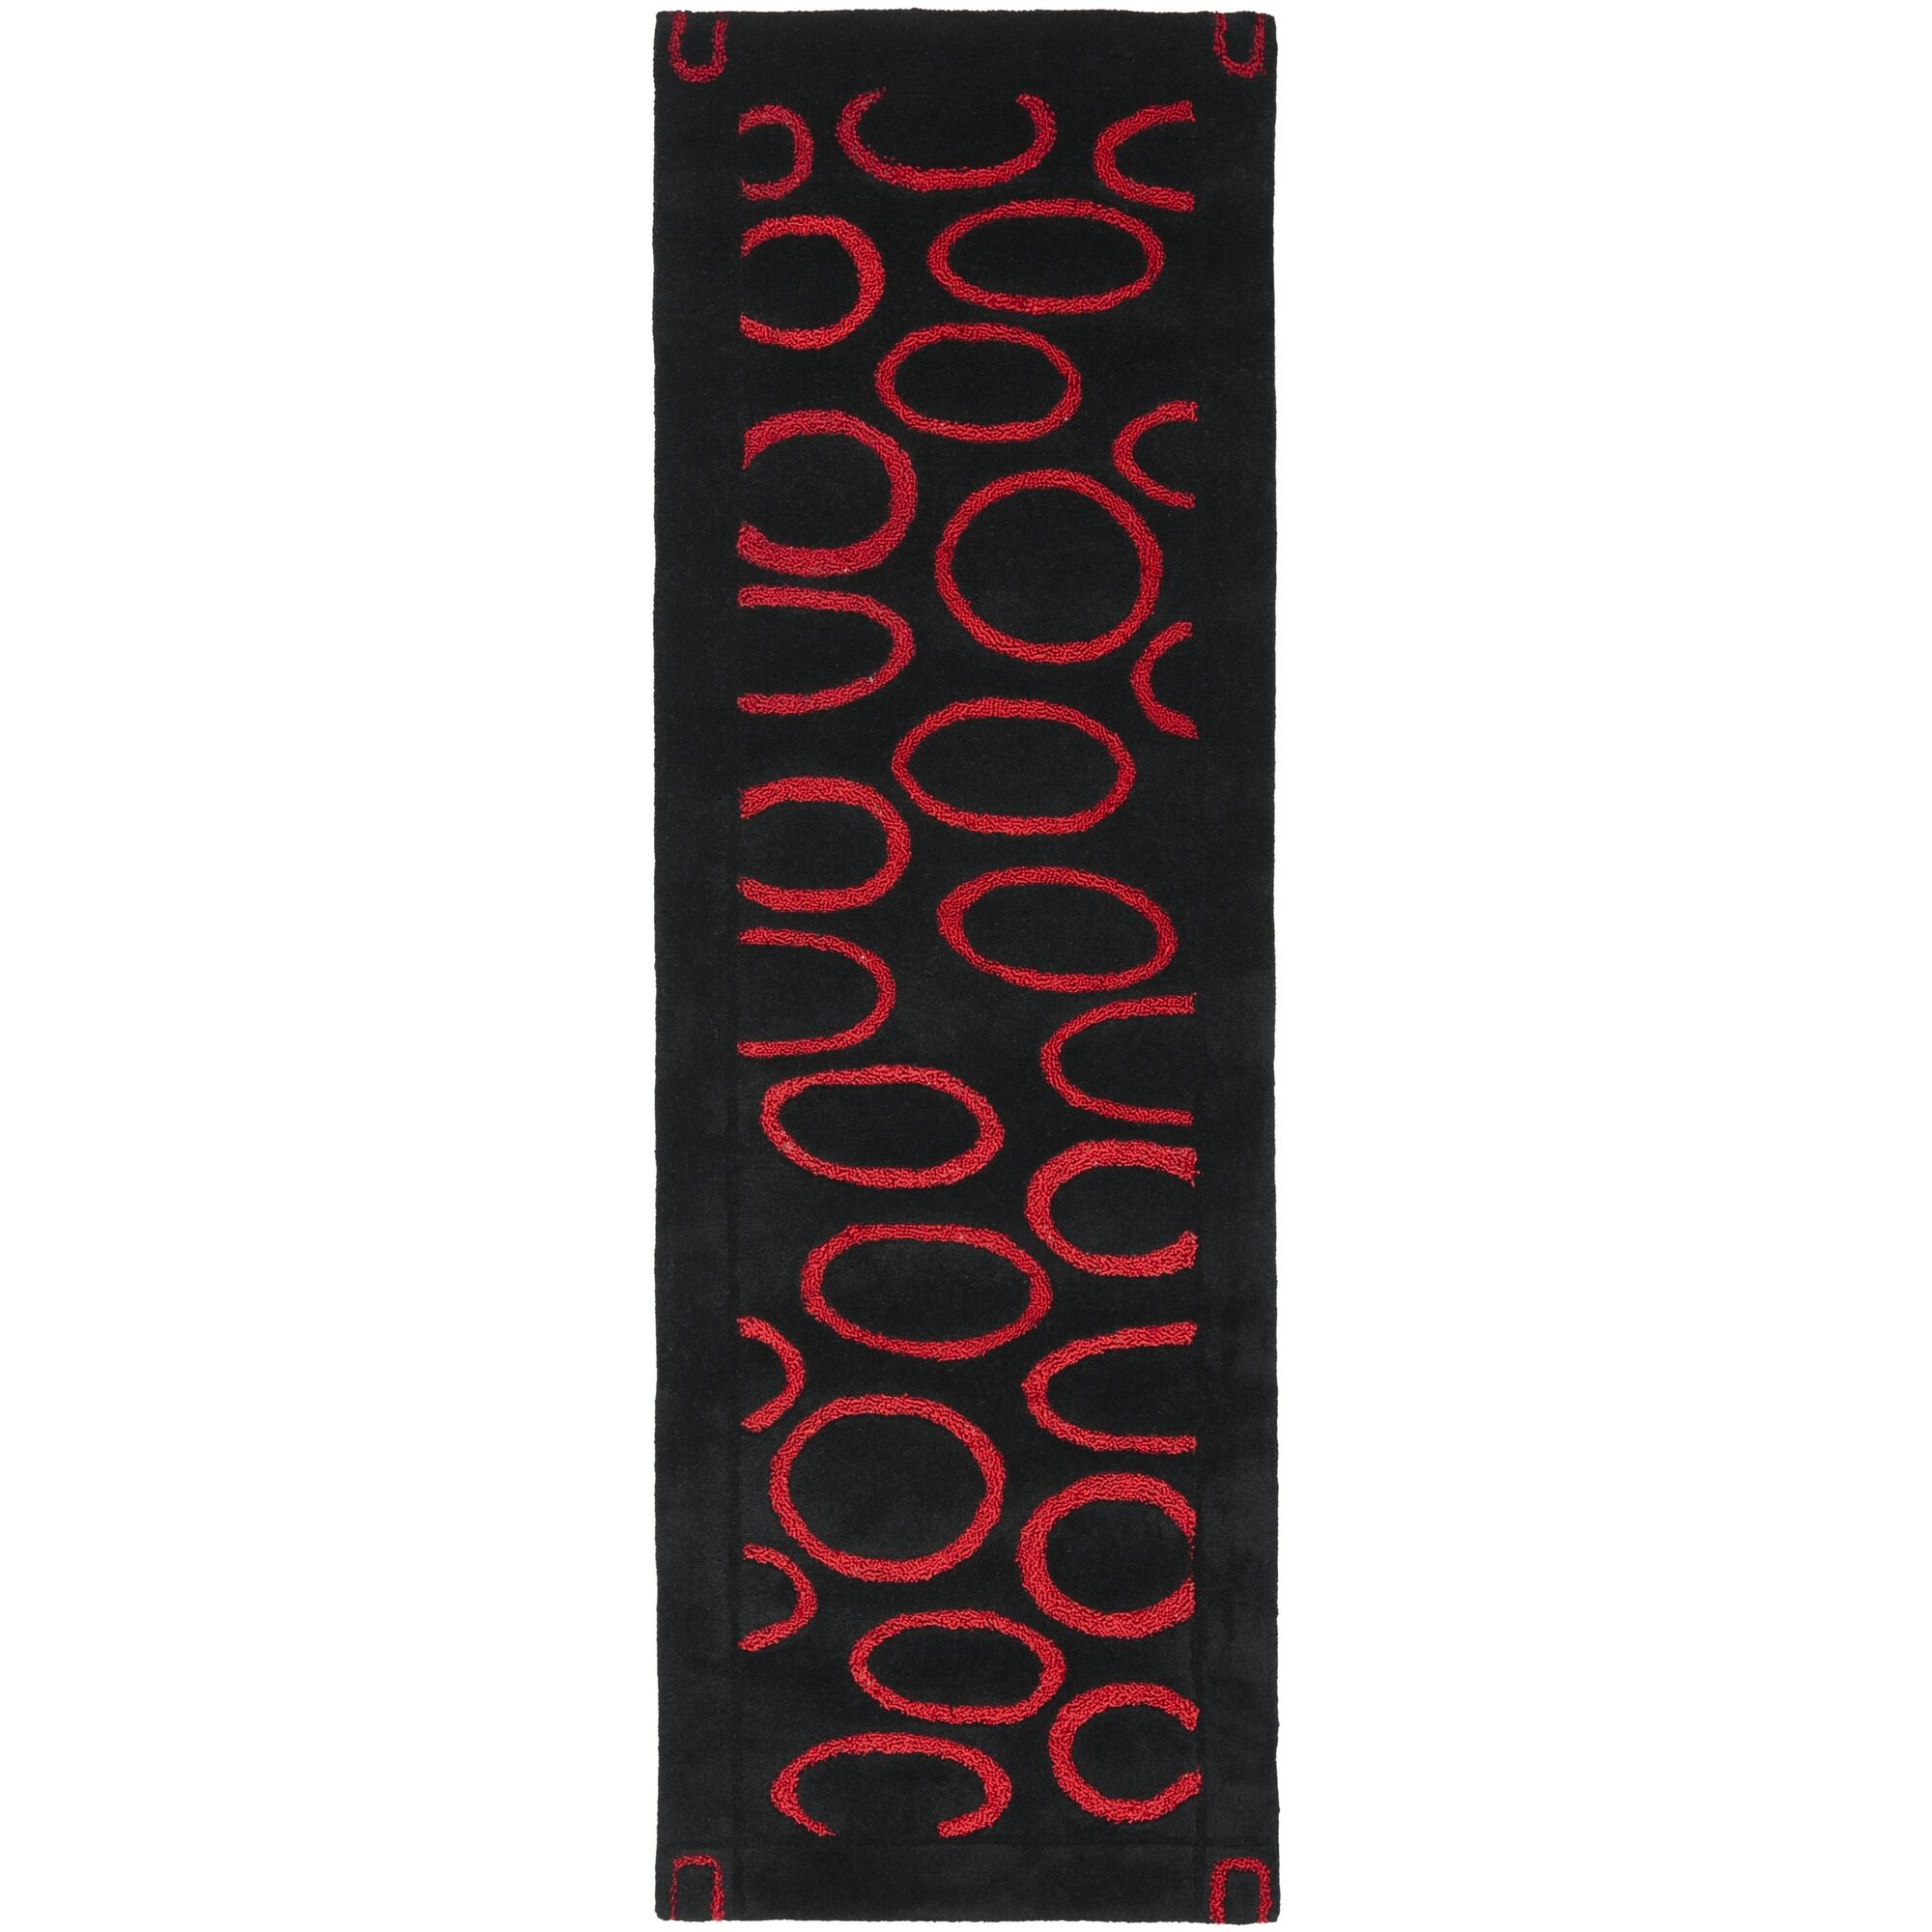 Armstrong Black/Red Area Rug Rug Size: Runner 2'6